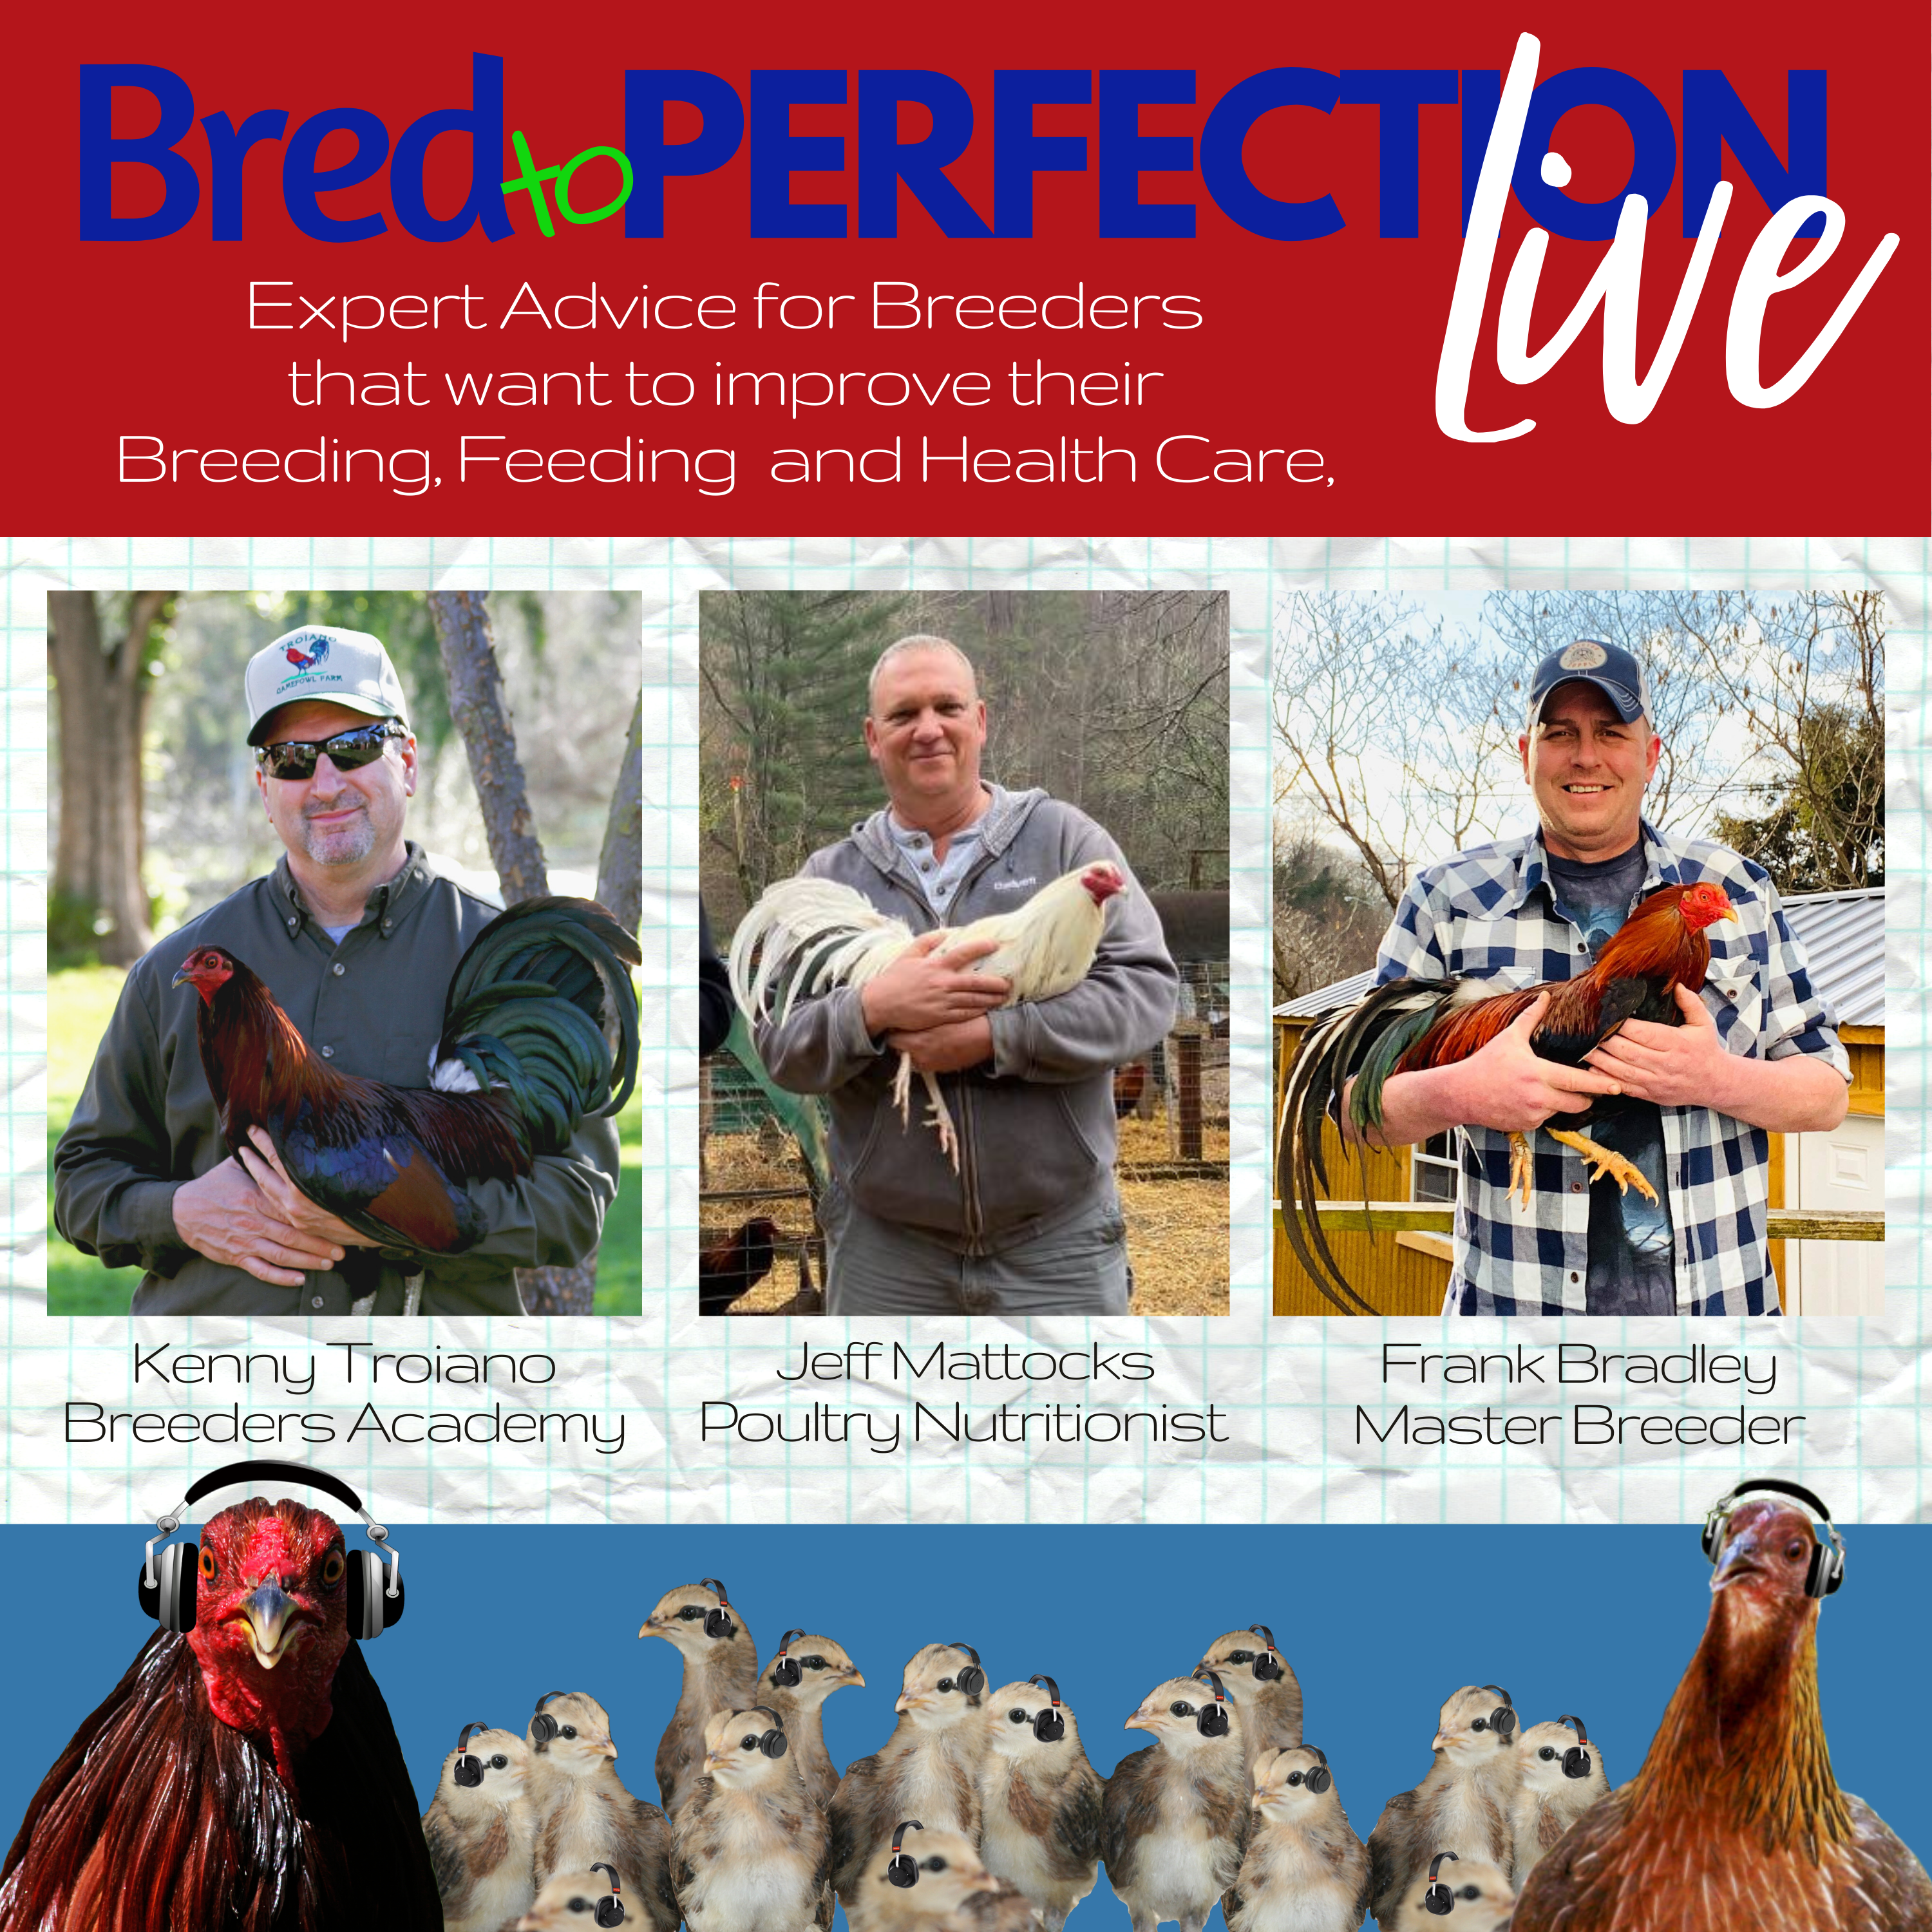 Ep2 – Bred to Perfection Live - Feeds, Feeding and Nutrition with Jeff Mattocks